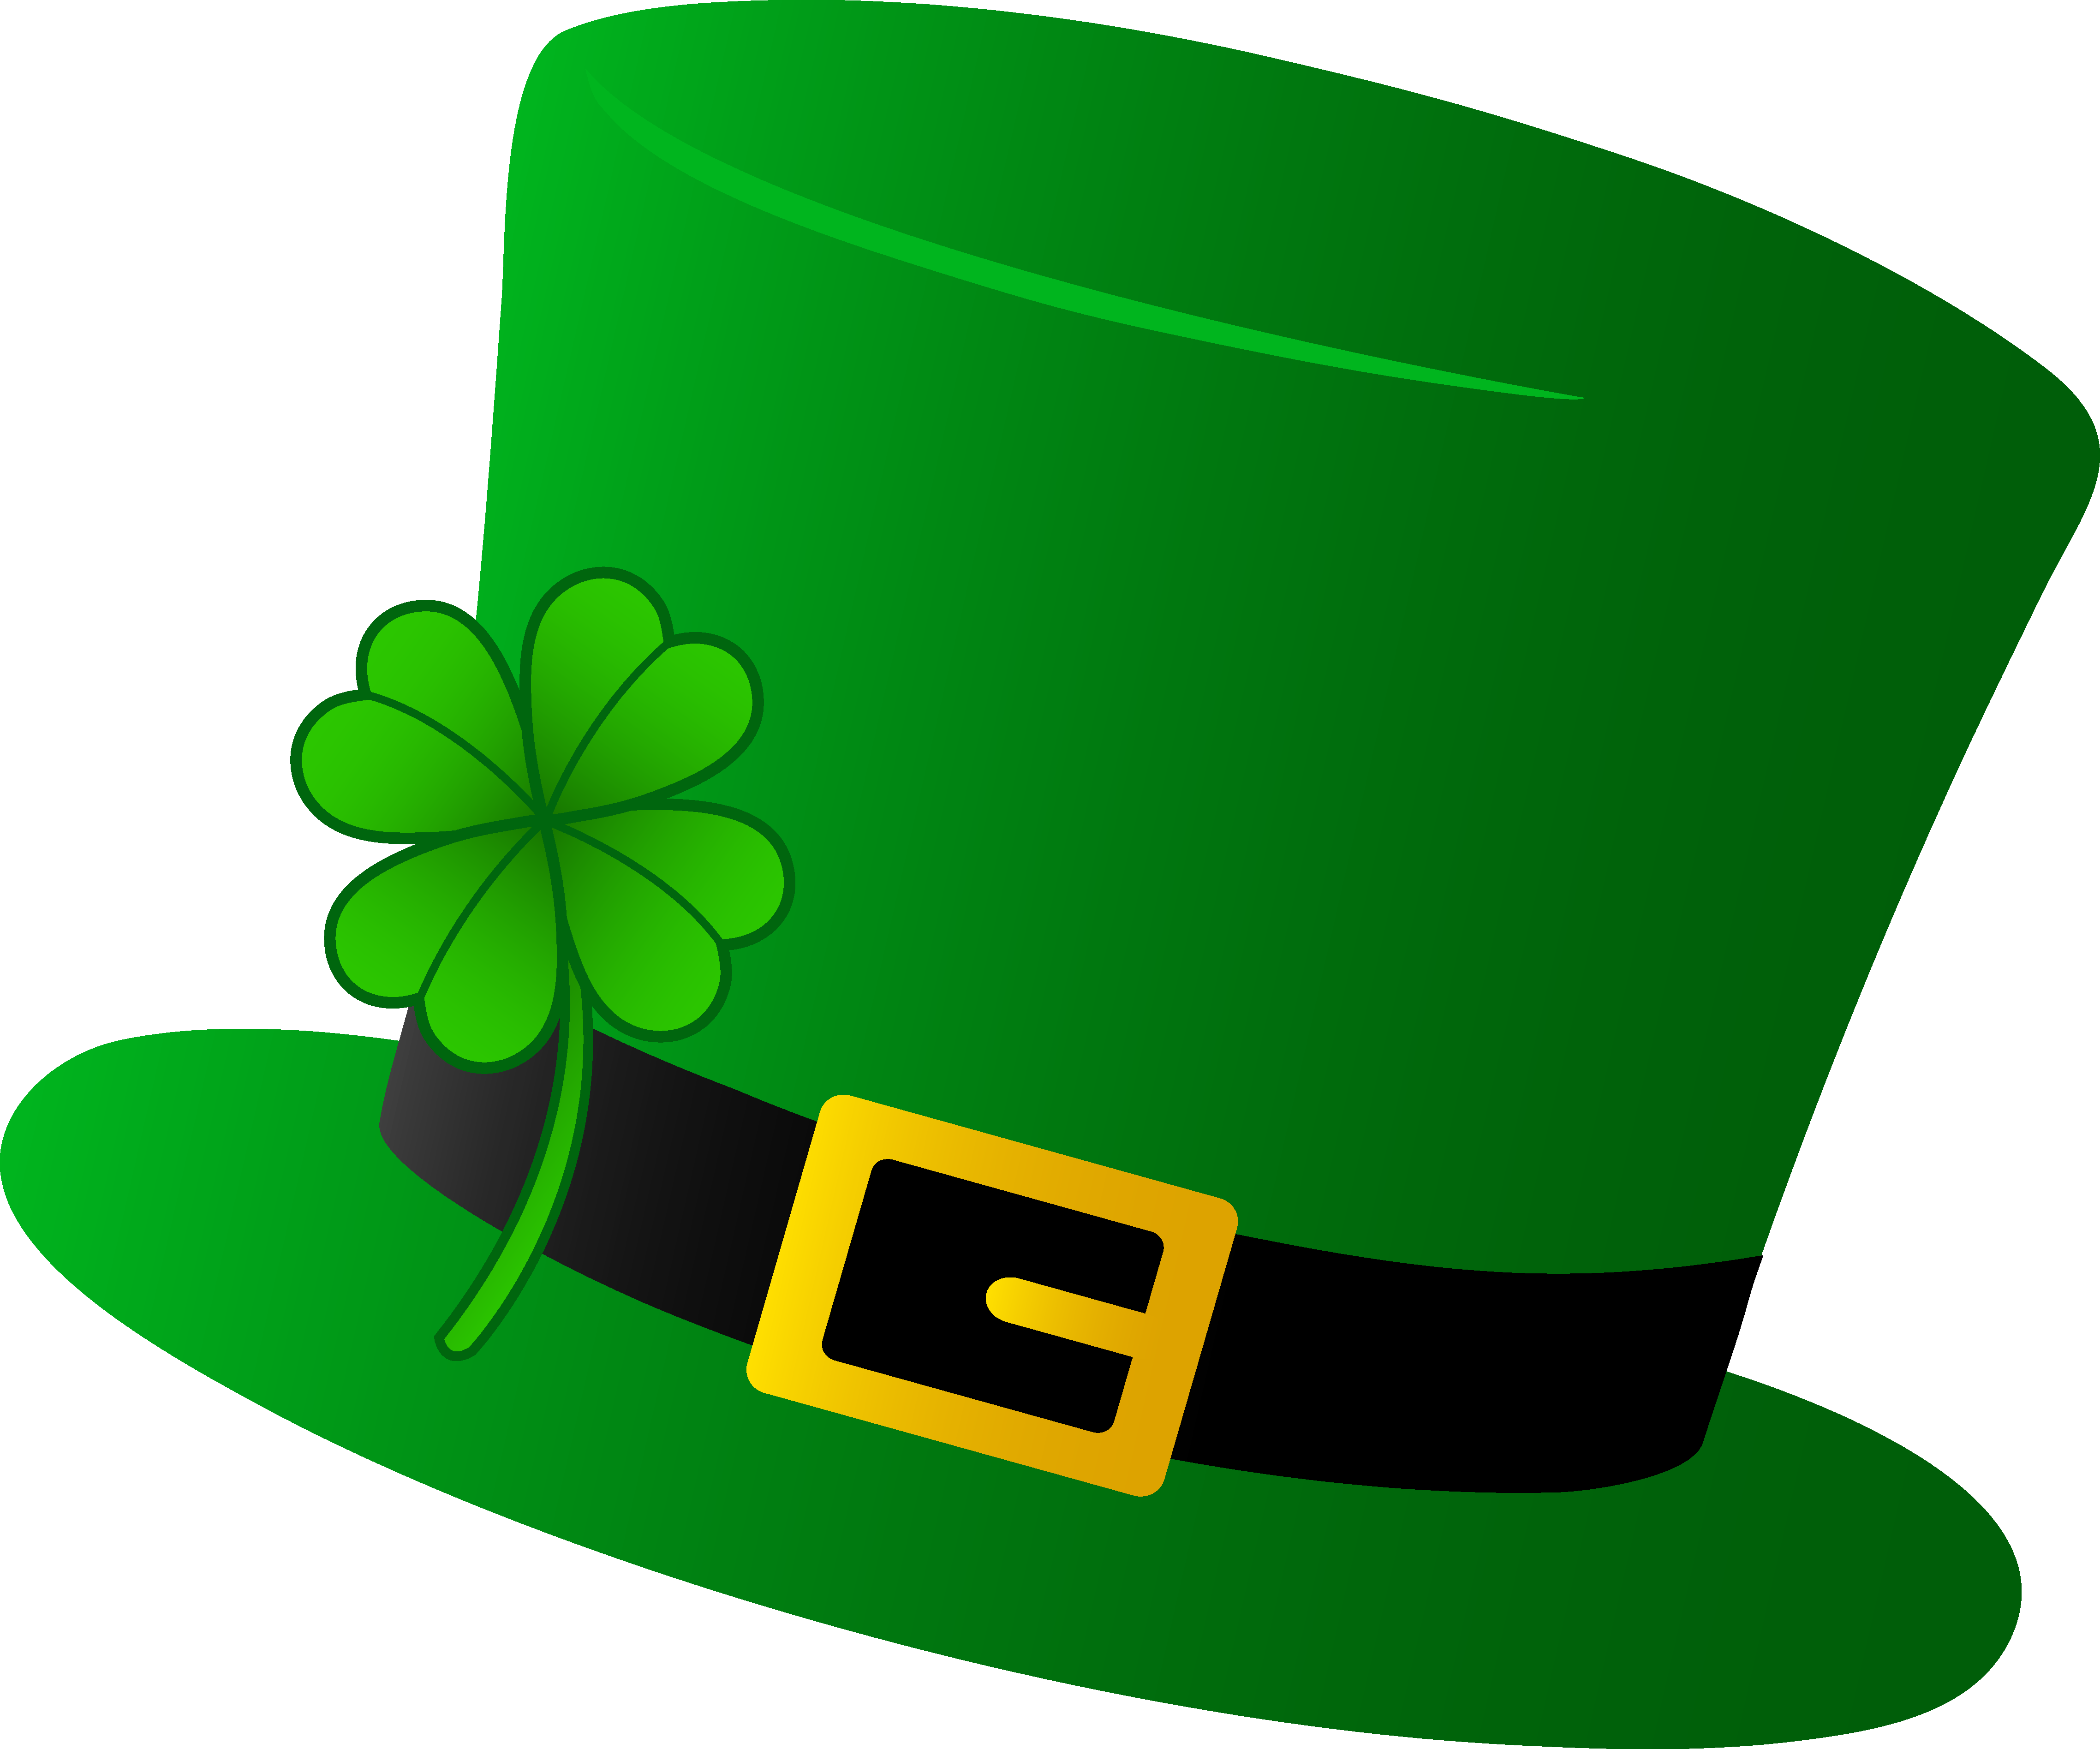 St Patrick S Day Clip Art Free Cliparts That You Can Download To You